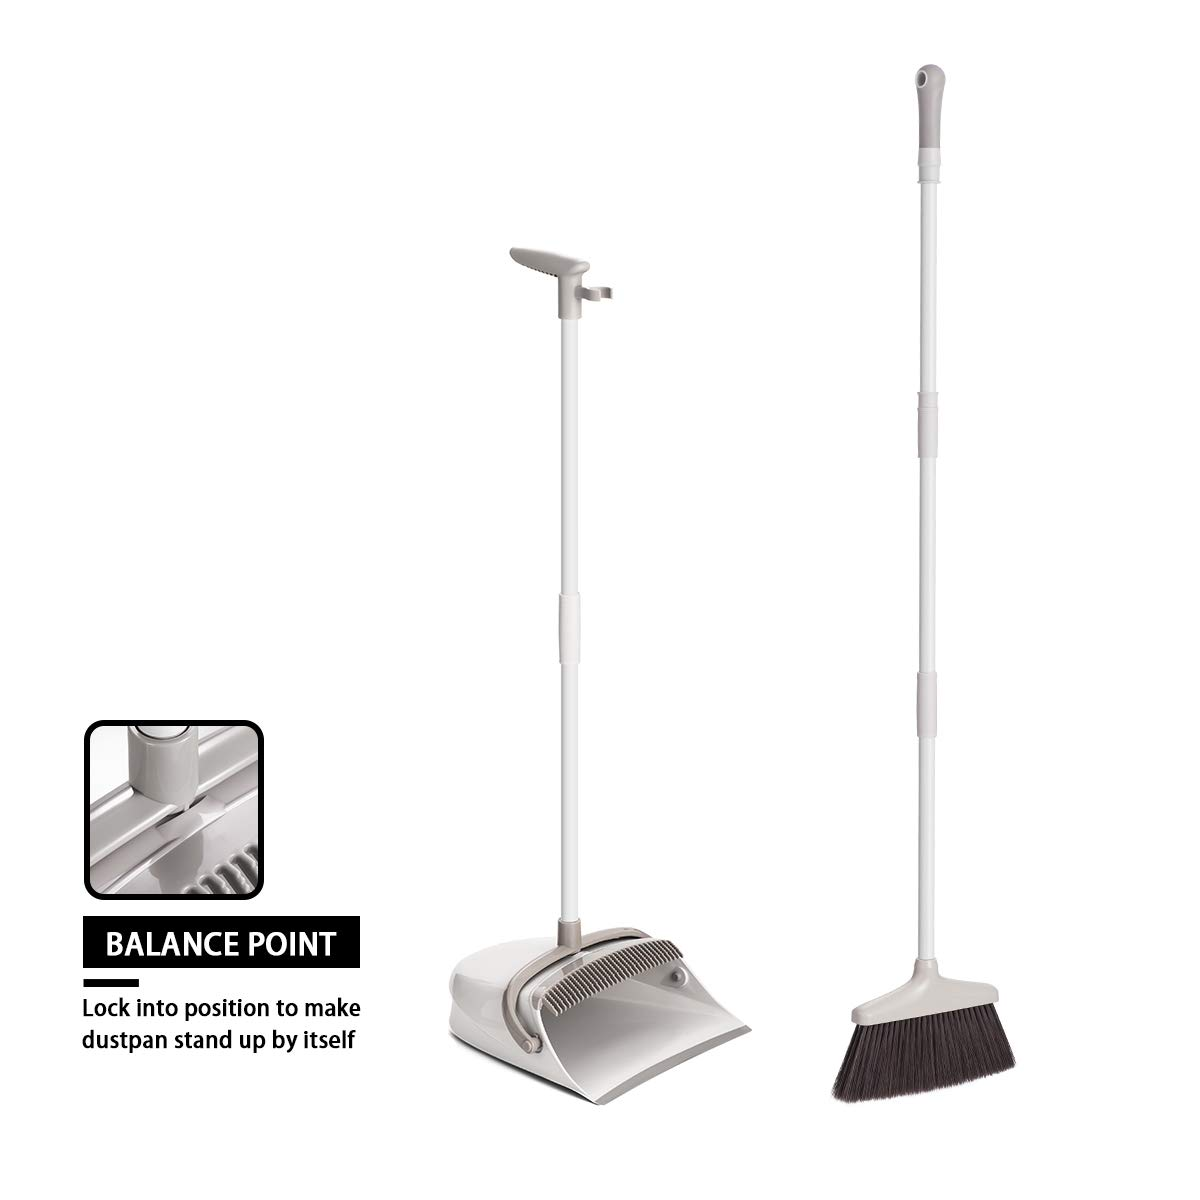 Broom and Dustpan Set, CQT Dust Pan and Broom with Long Handle for Home Kitchen Industry Lobby Floor Sweeping Upright Stand Up Dustpan Cleans Broom Combo by CQT (Image #8)